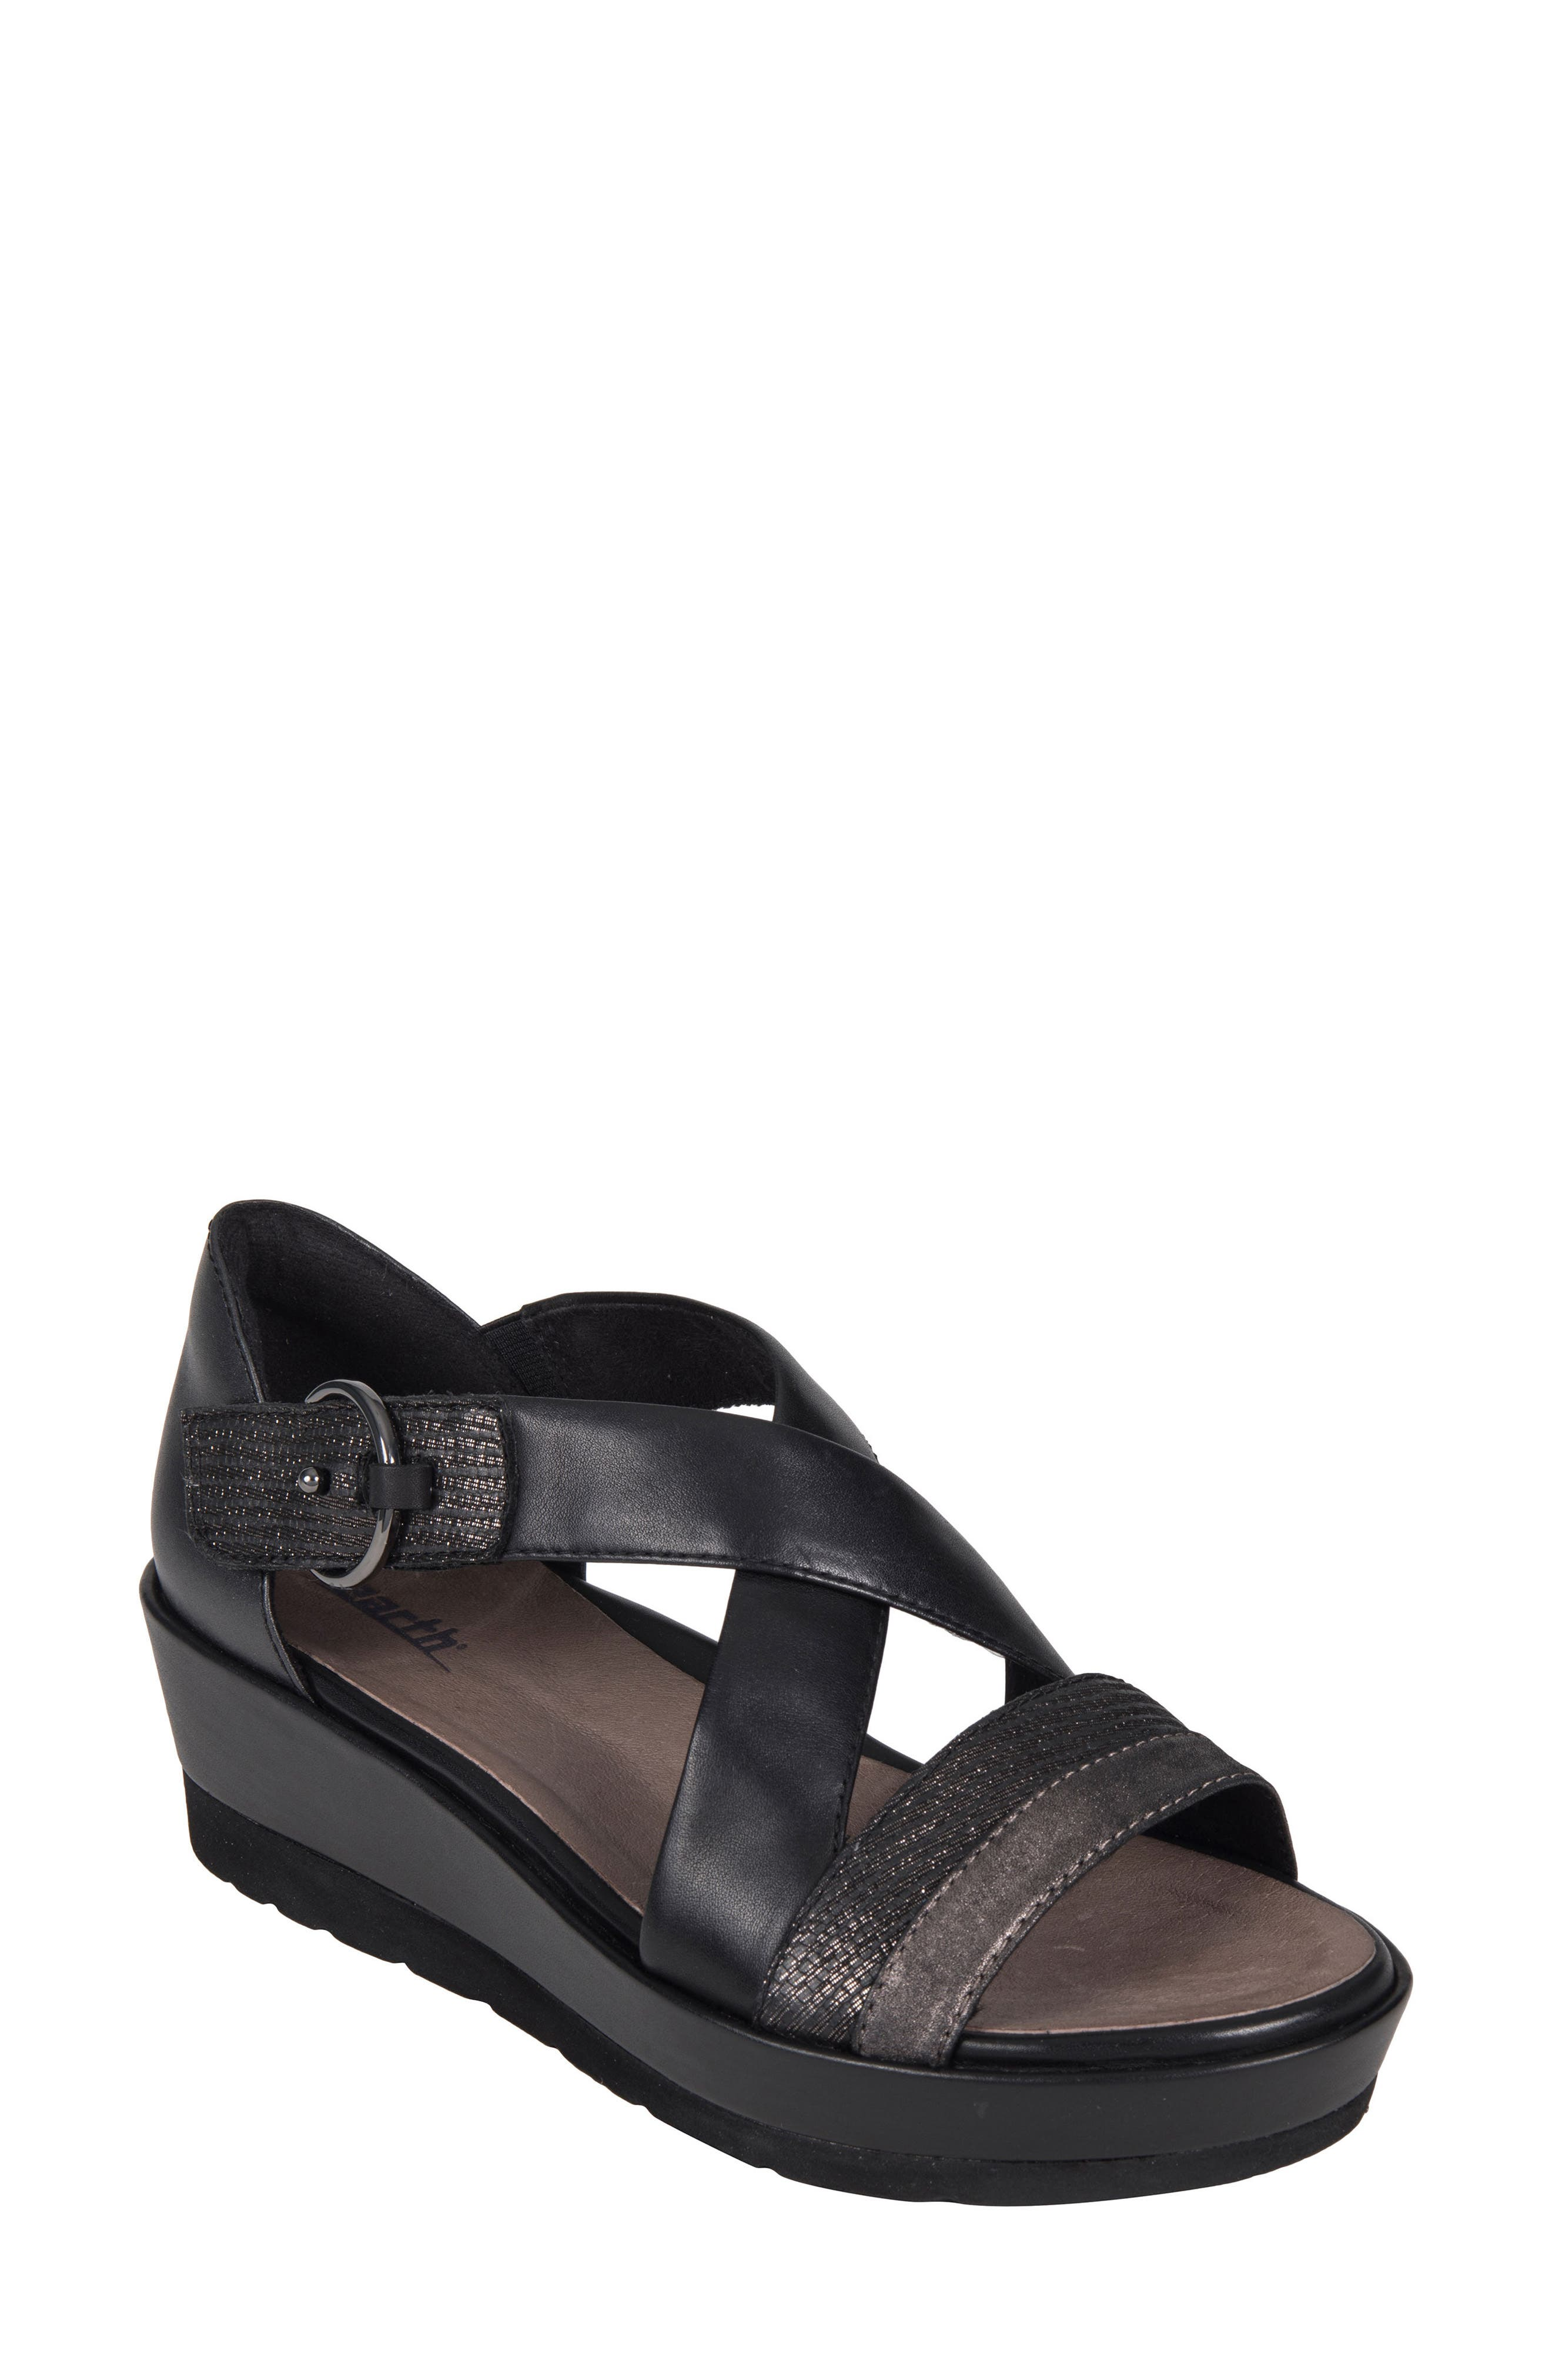 Hibiscus Sandal,                             Main thumbnail 1, color,                             BLACK LEATHER